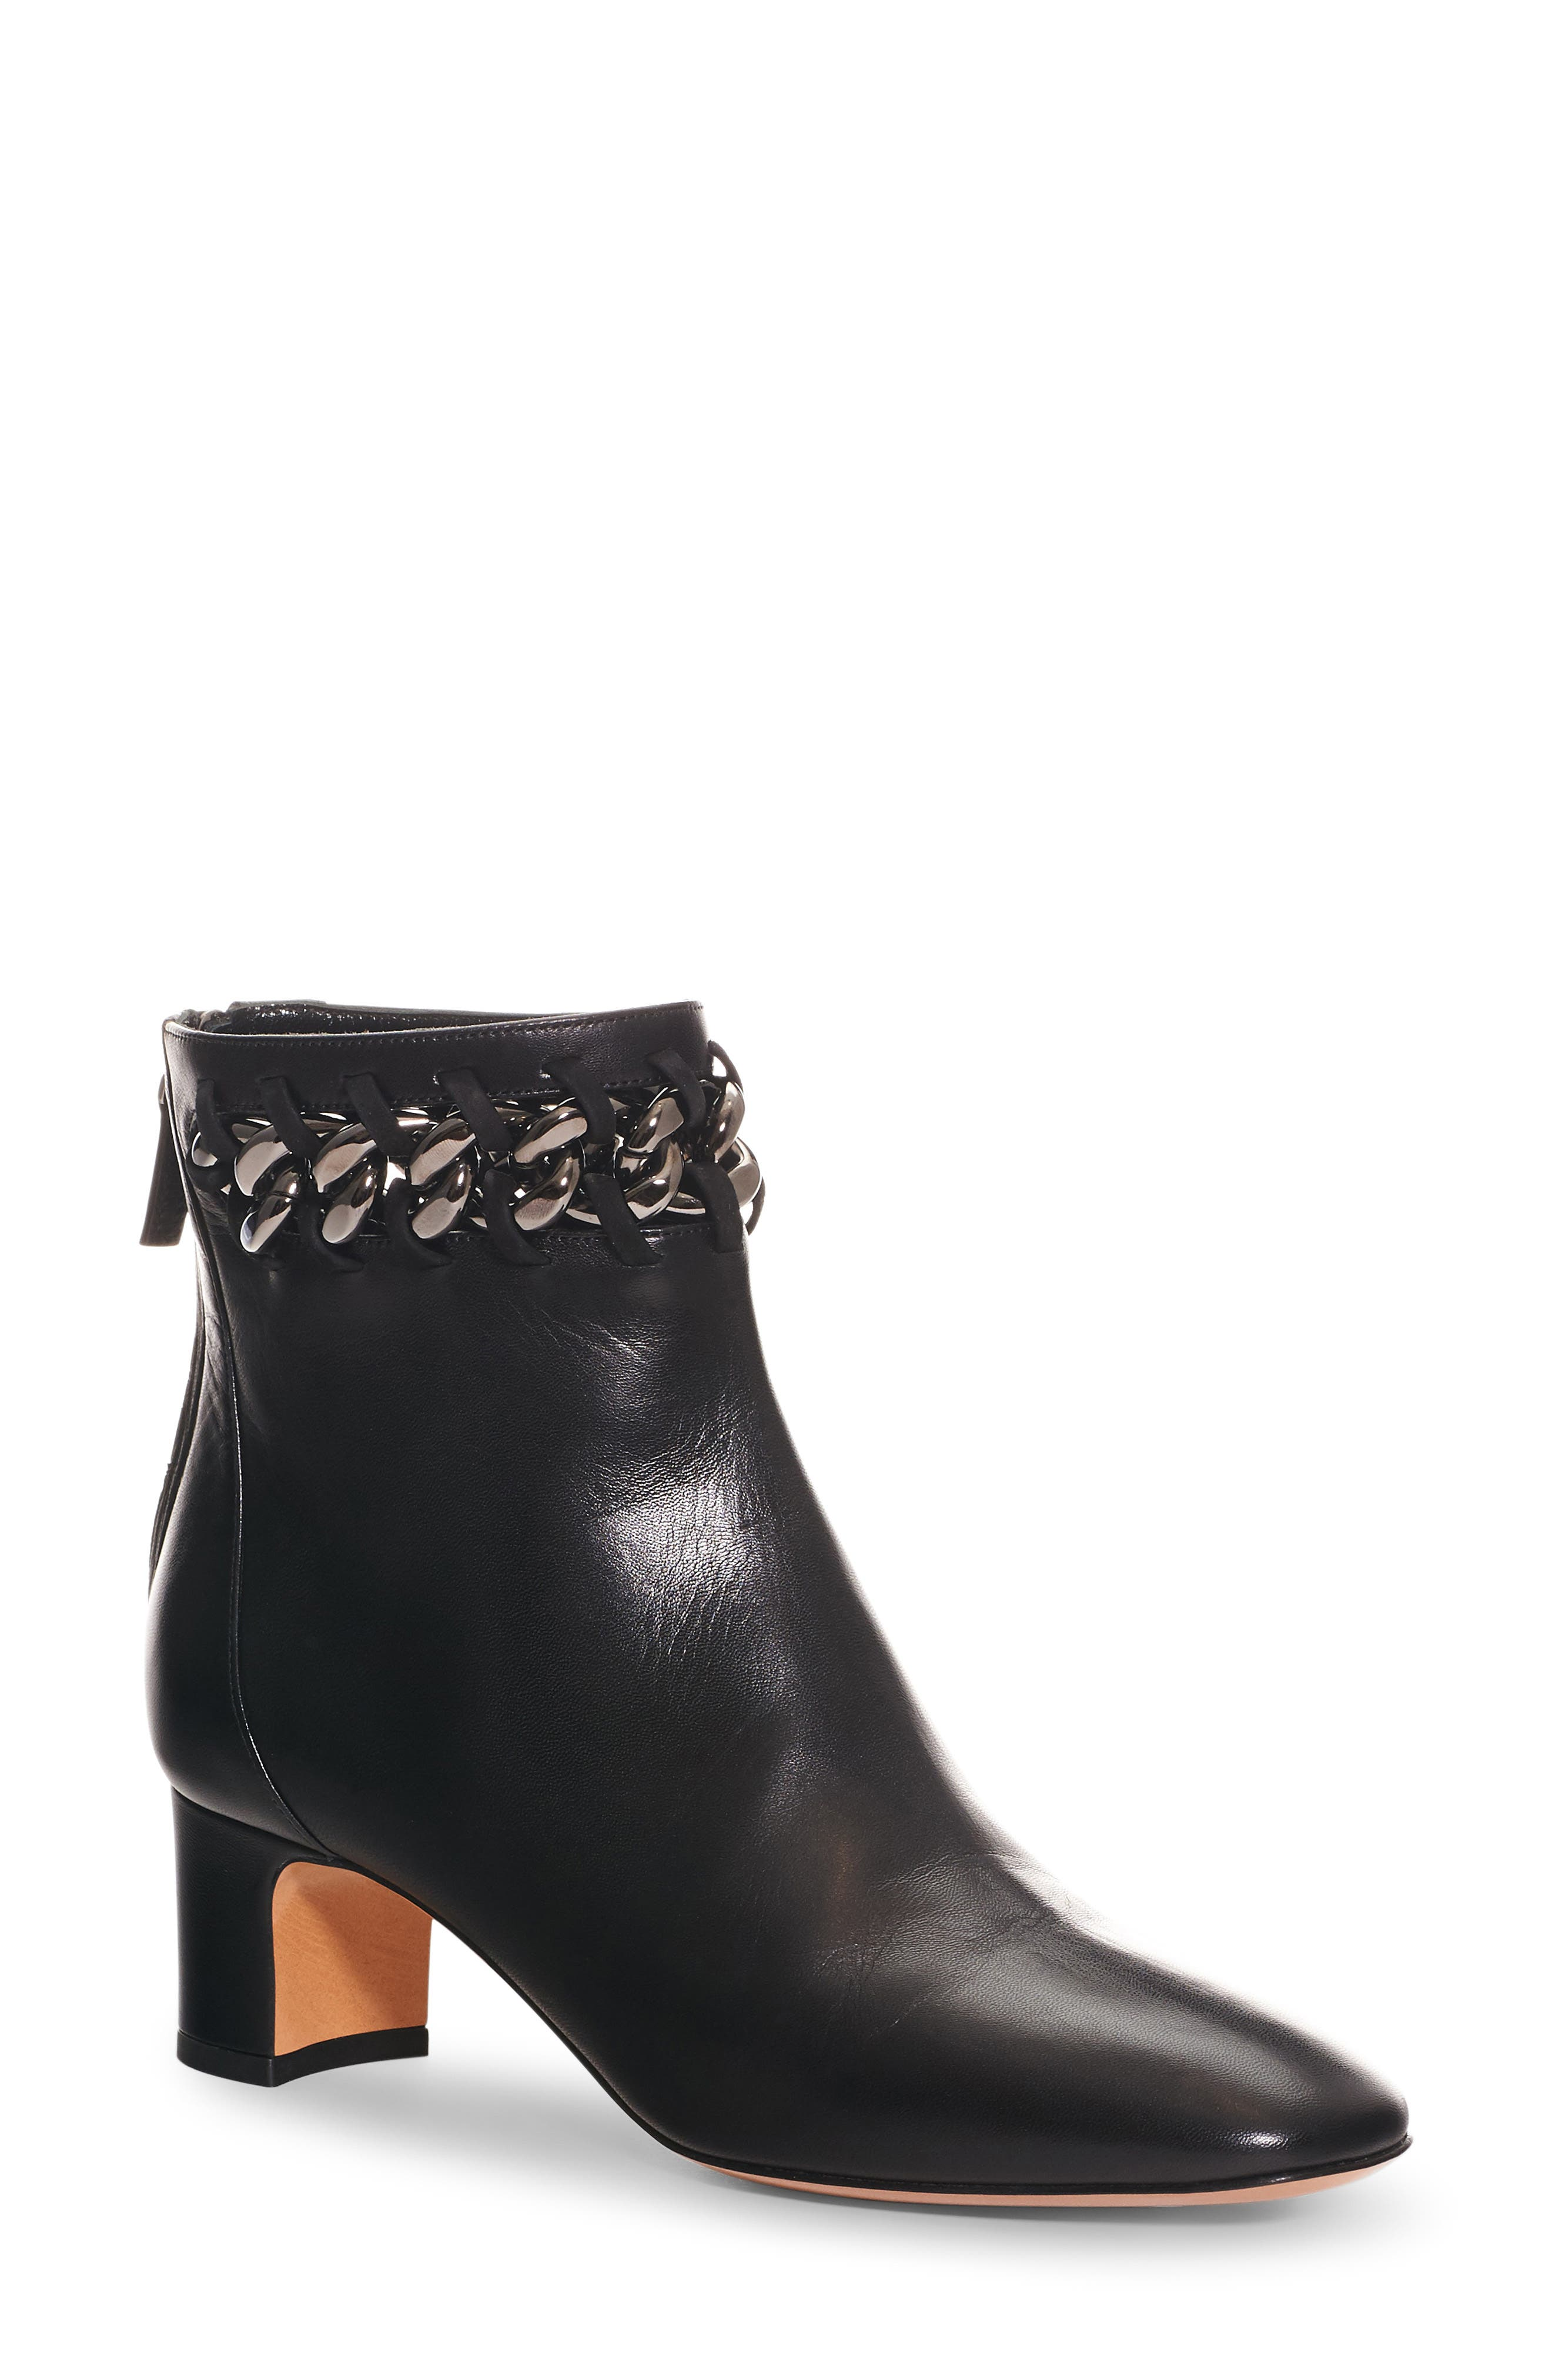 Alternate Image 1 Selected - Valentino Chain Woven Bootie (Women)